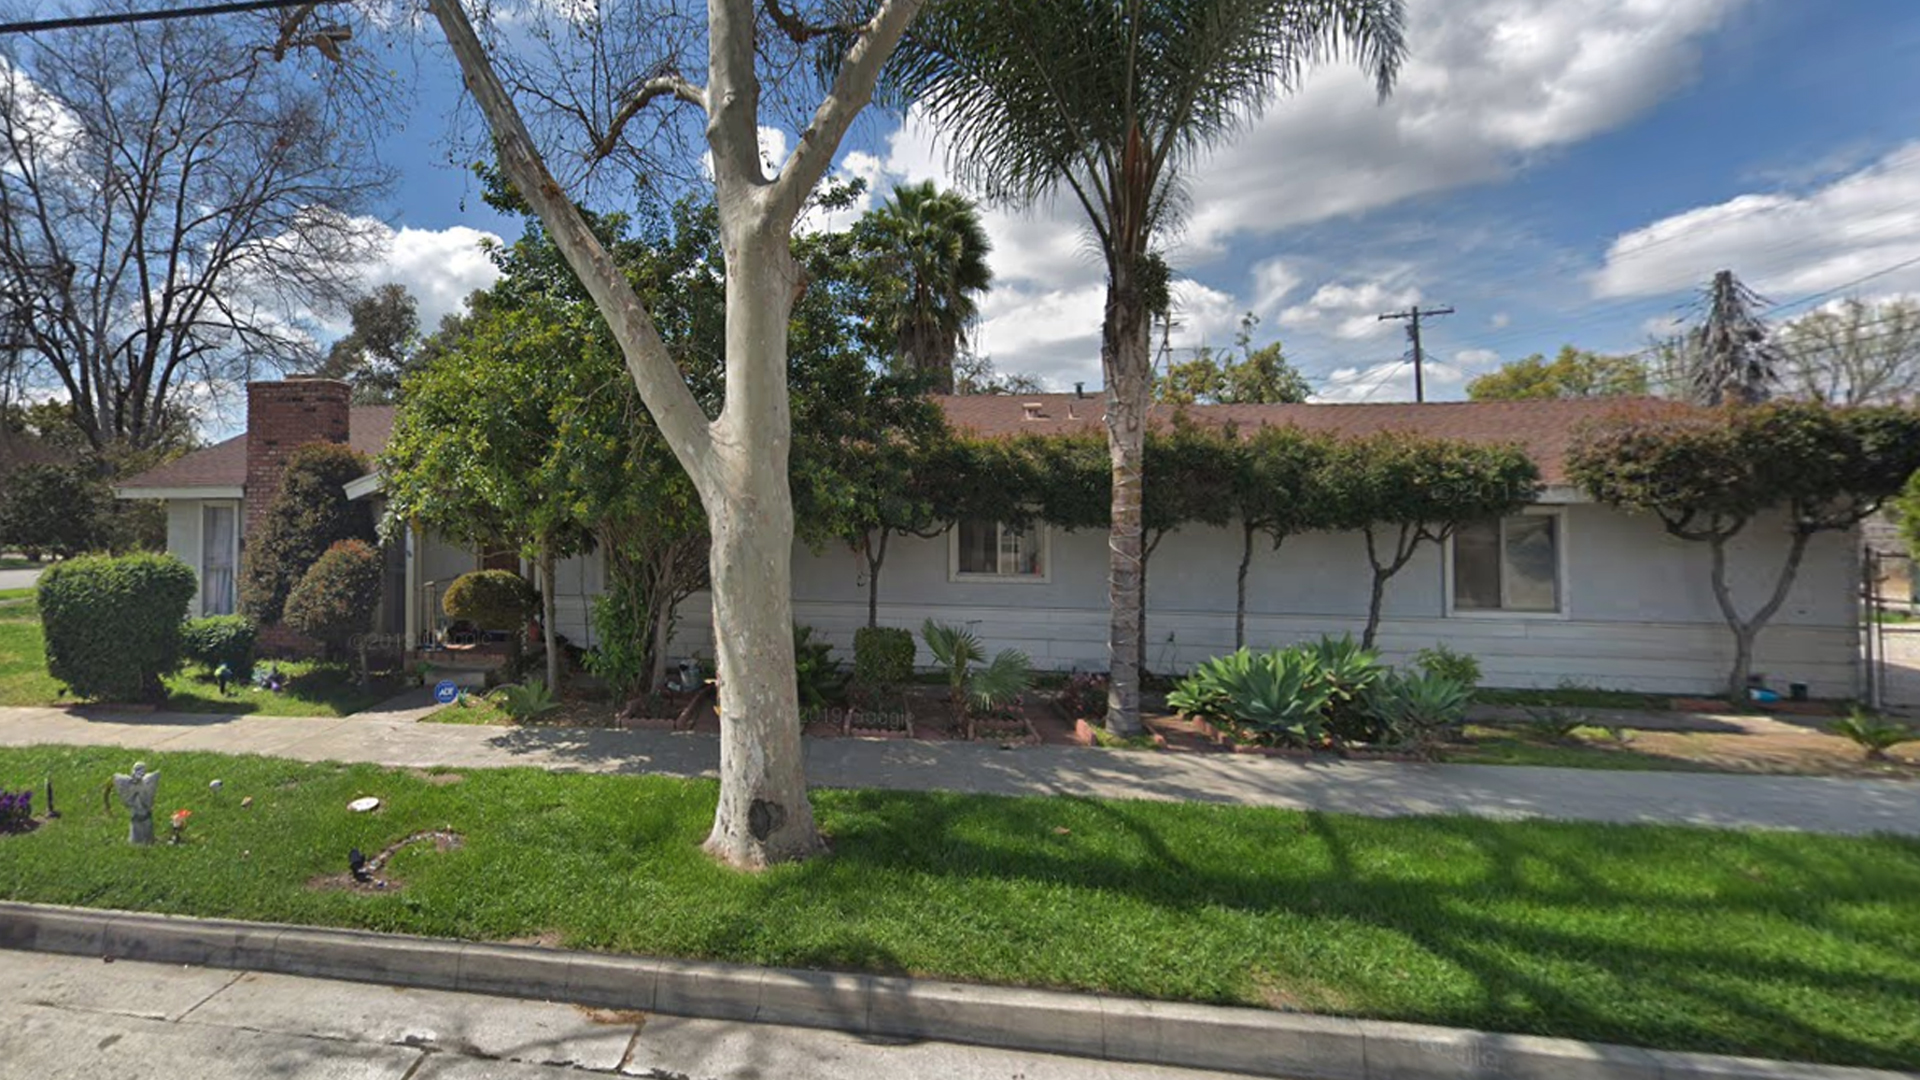 The Pomona home where police say a fatal shooting occurred in June 2017 is seen in a Google Maps Street View image from March 2019.